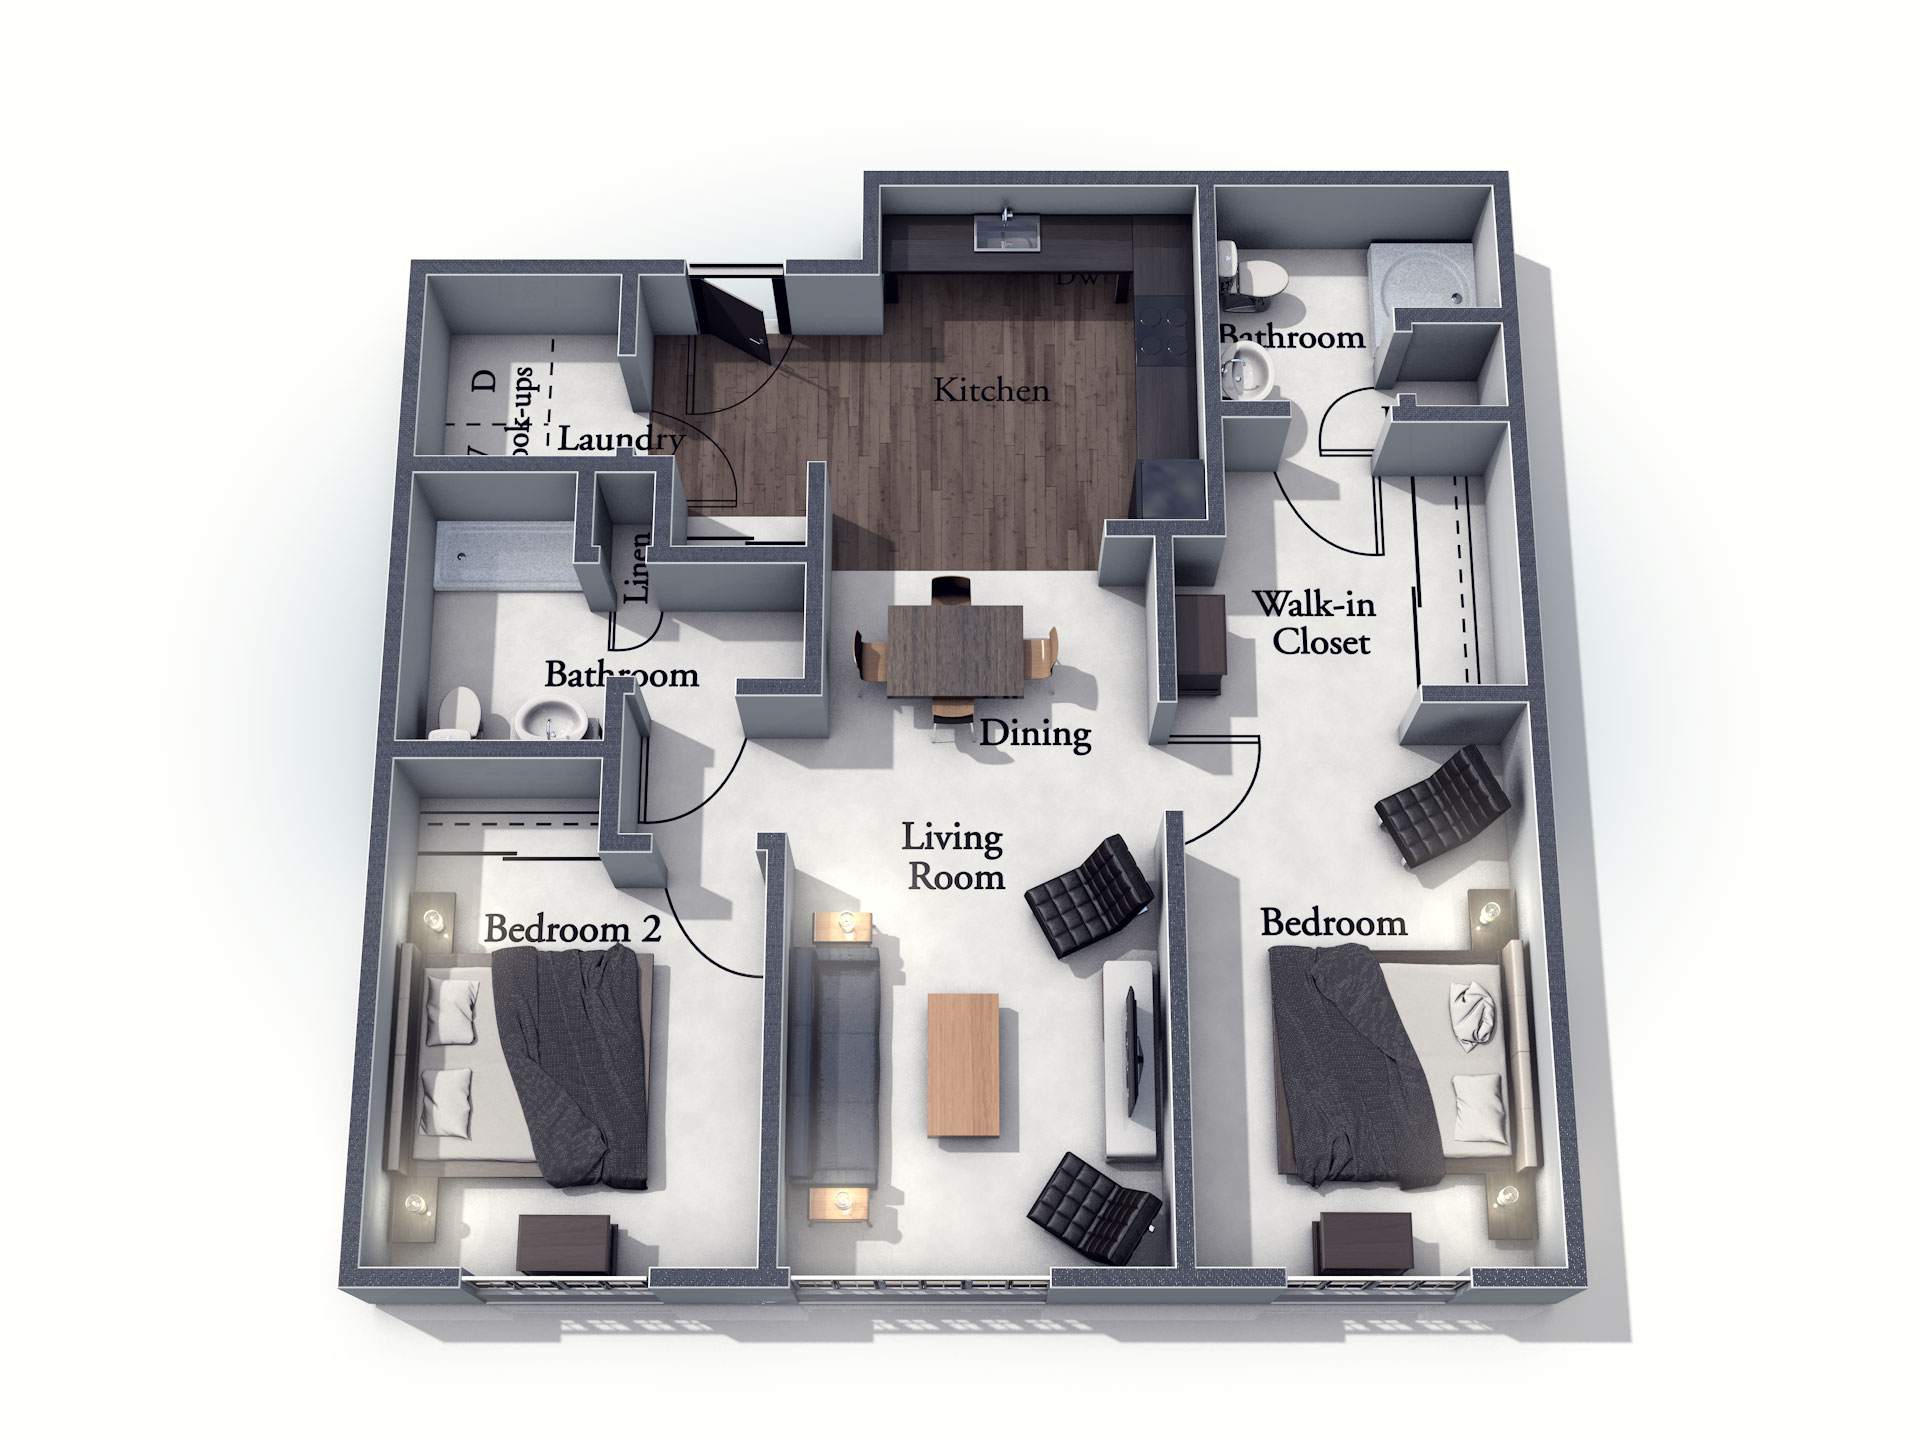 This 3D rendering of the Scarborough living space shows an example of the floor plan layout. Please contact the Summit Pointe Senior Living Community for more information.